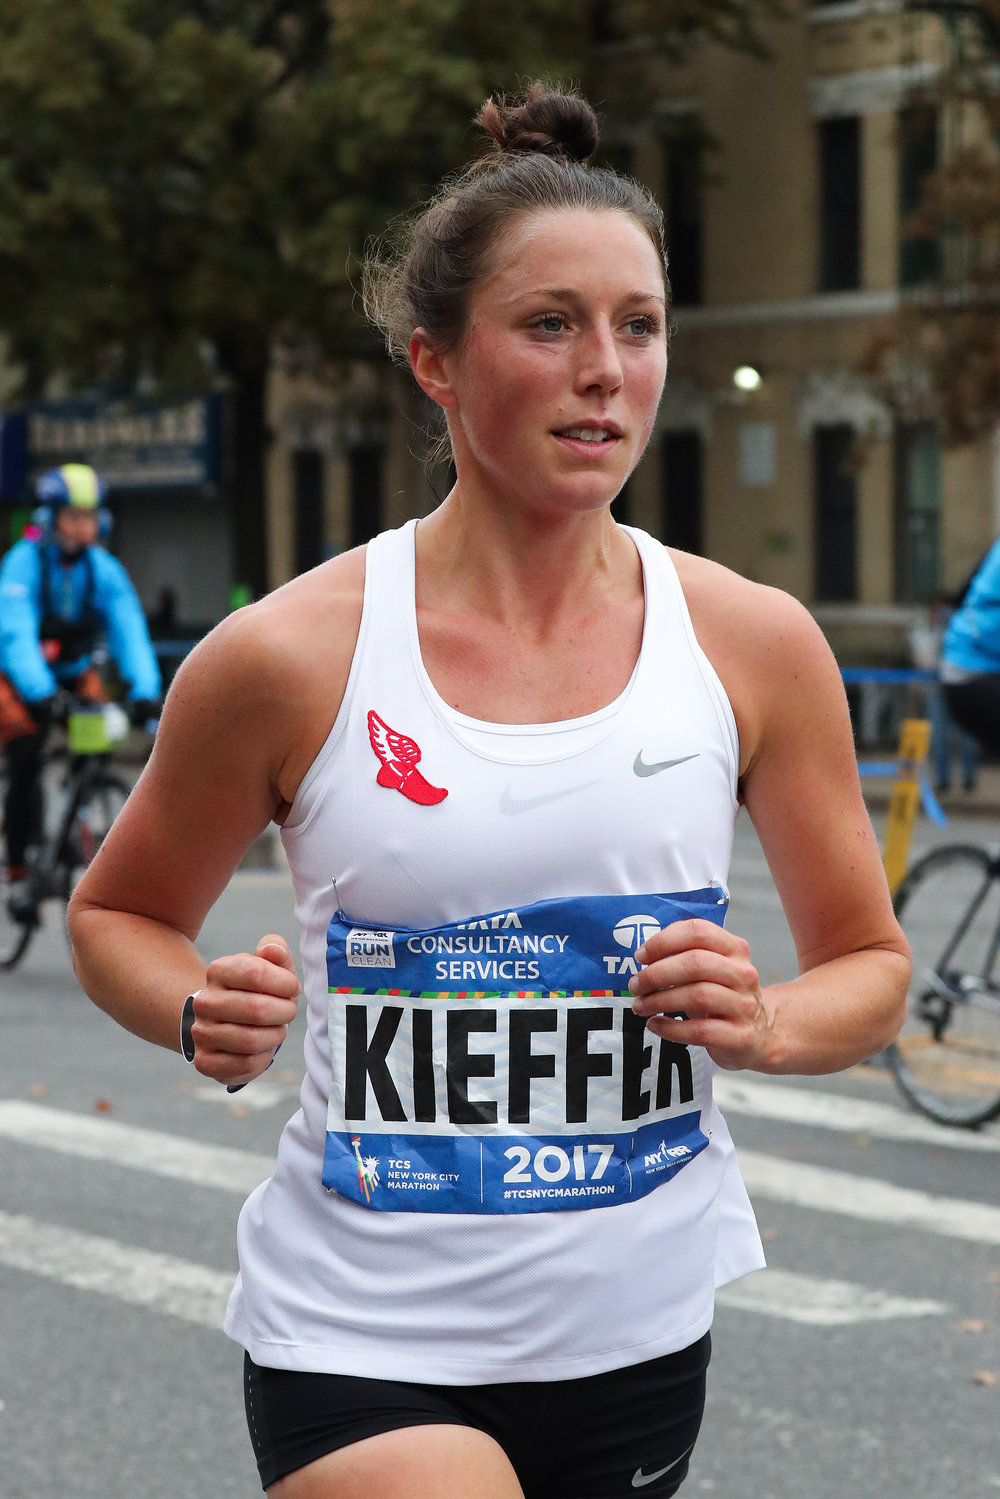 NYCM17_VS_Kieffer_Allie2.jpg